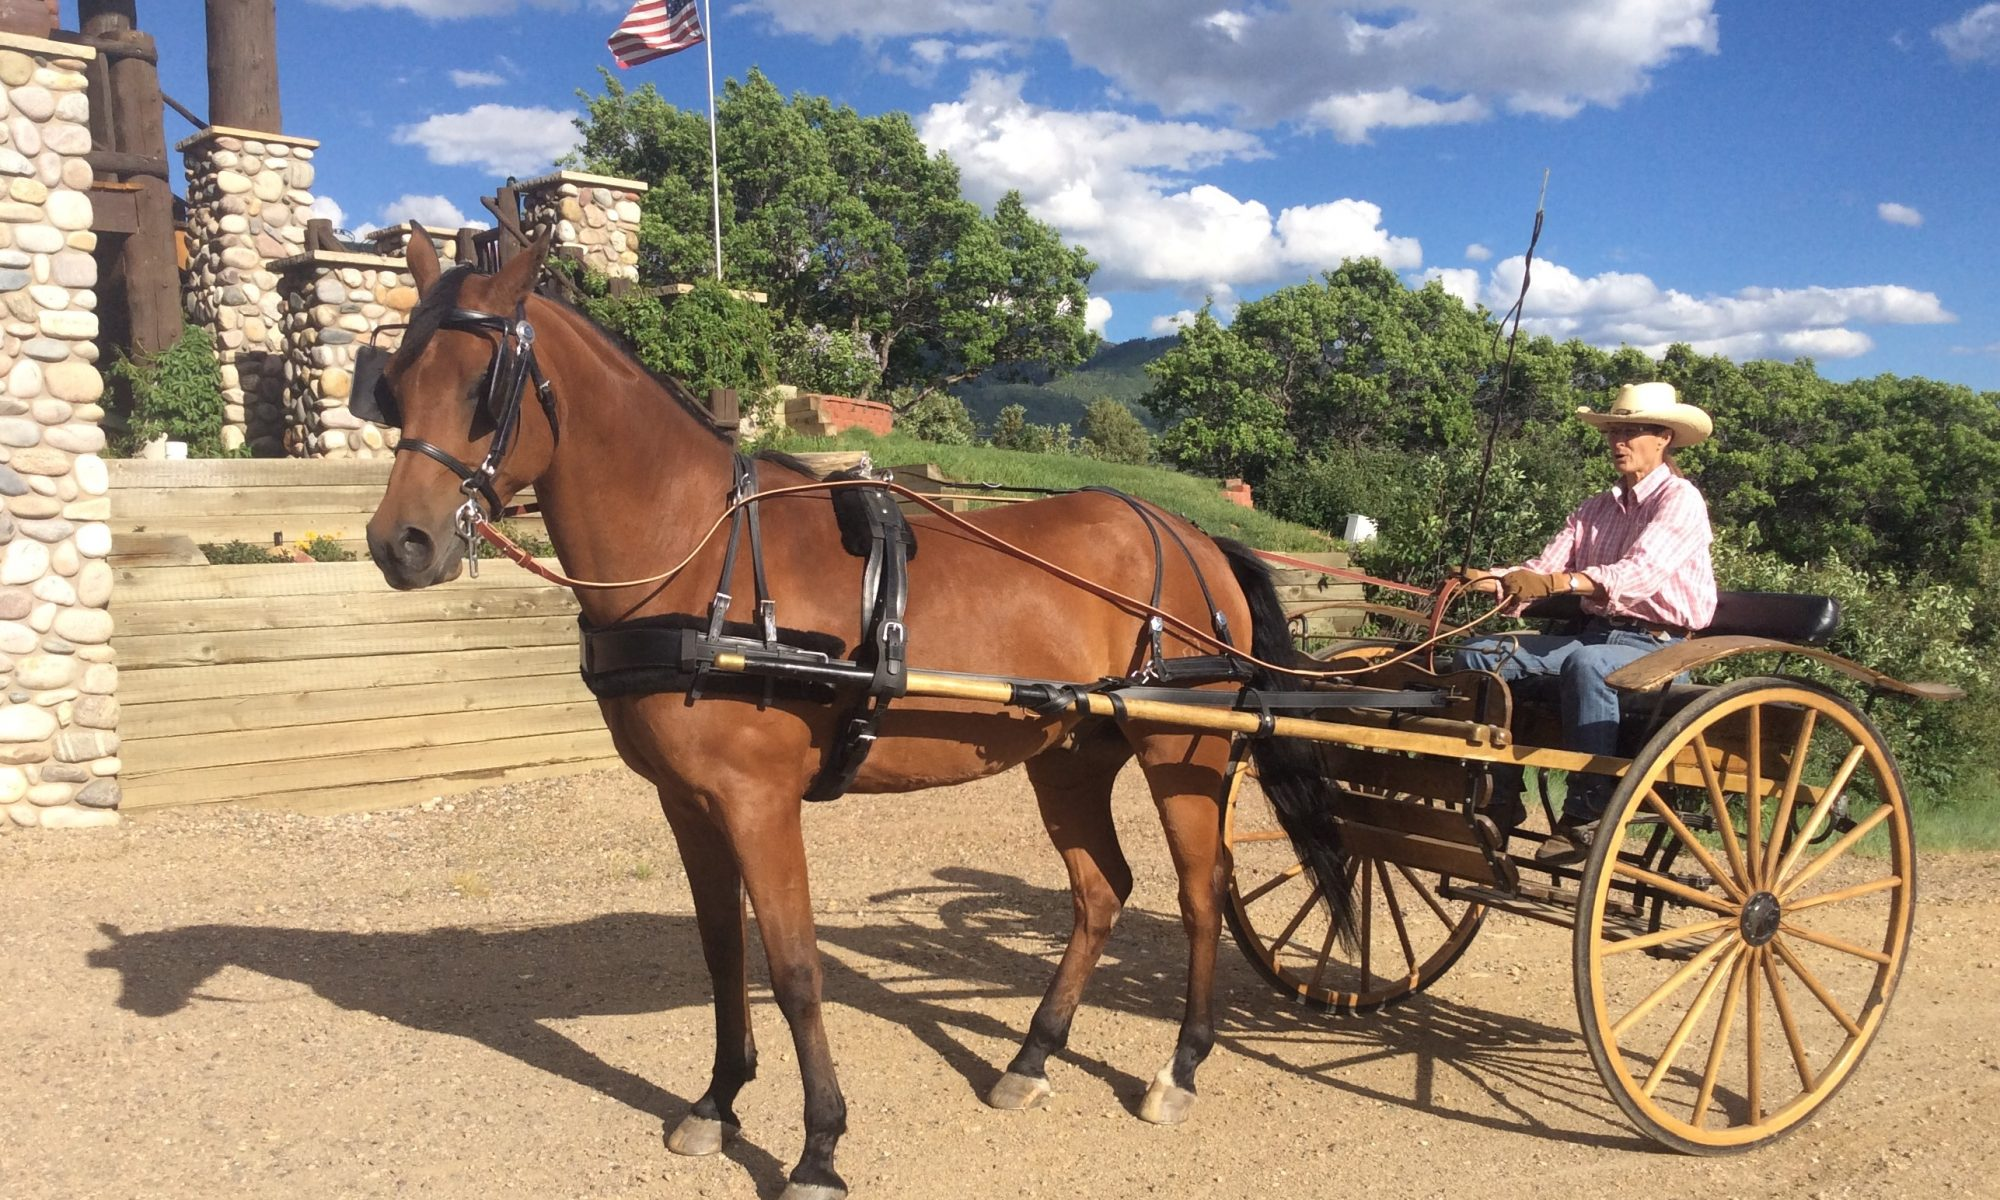 Horse and Carriage at Spring Creek Farm